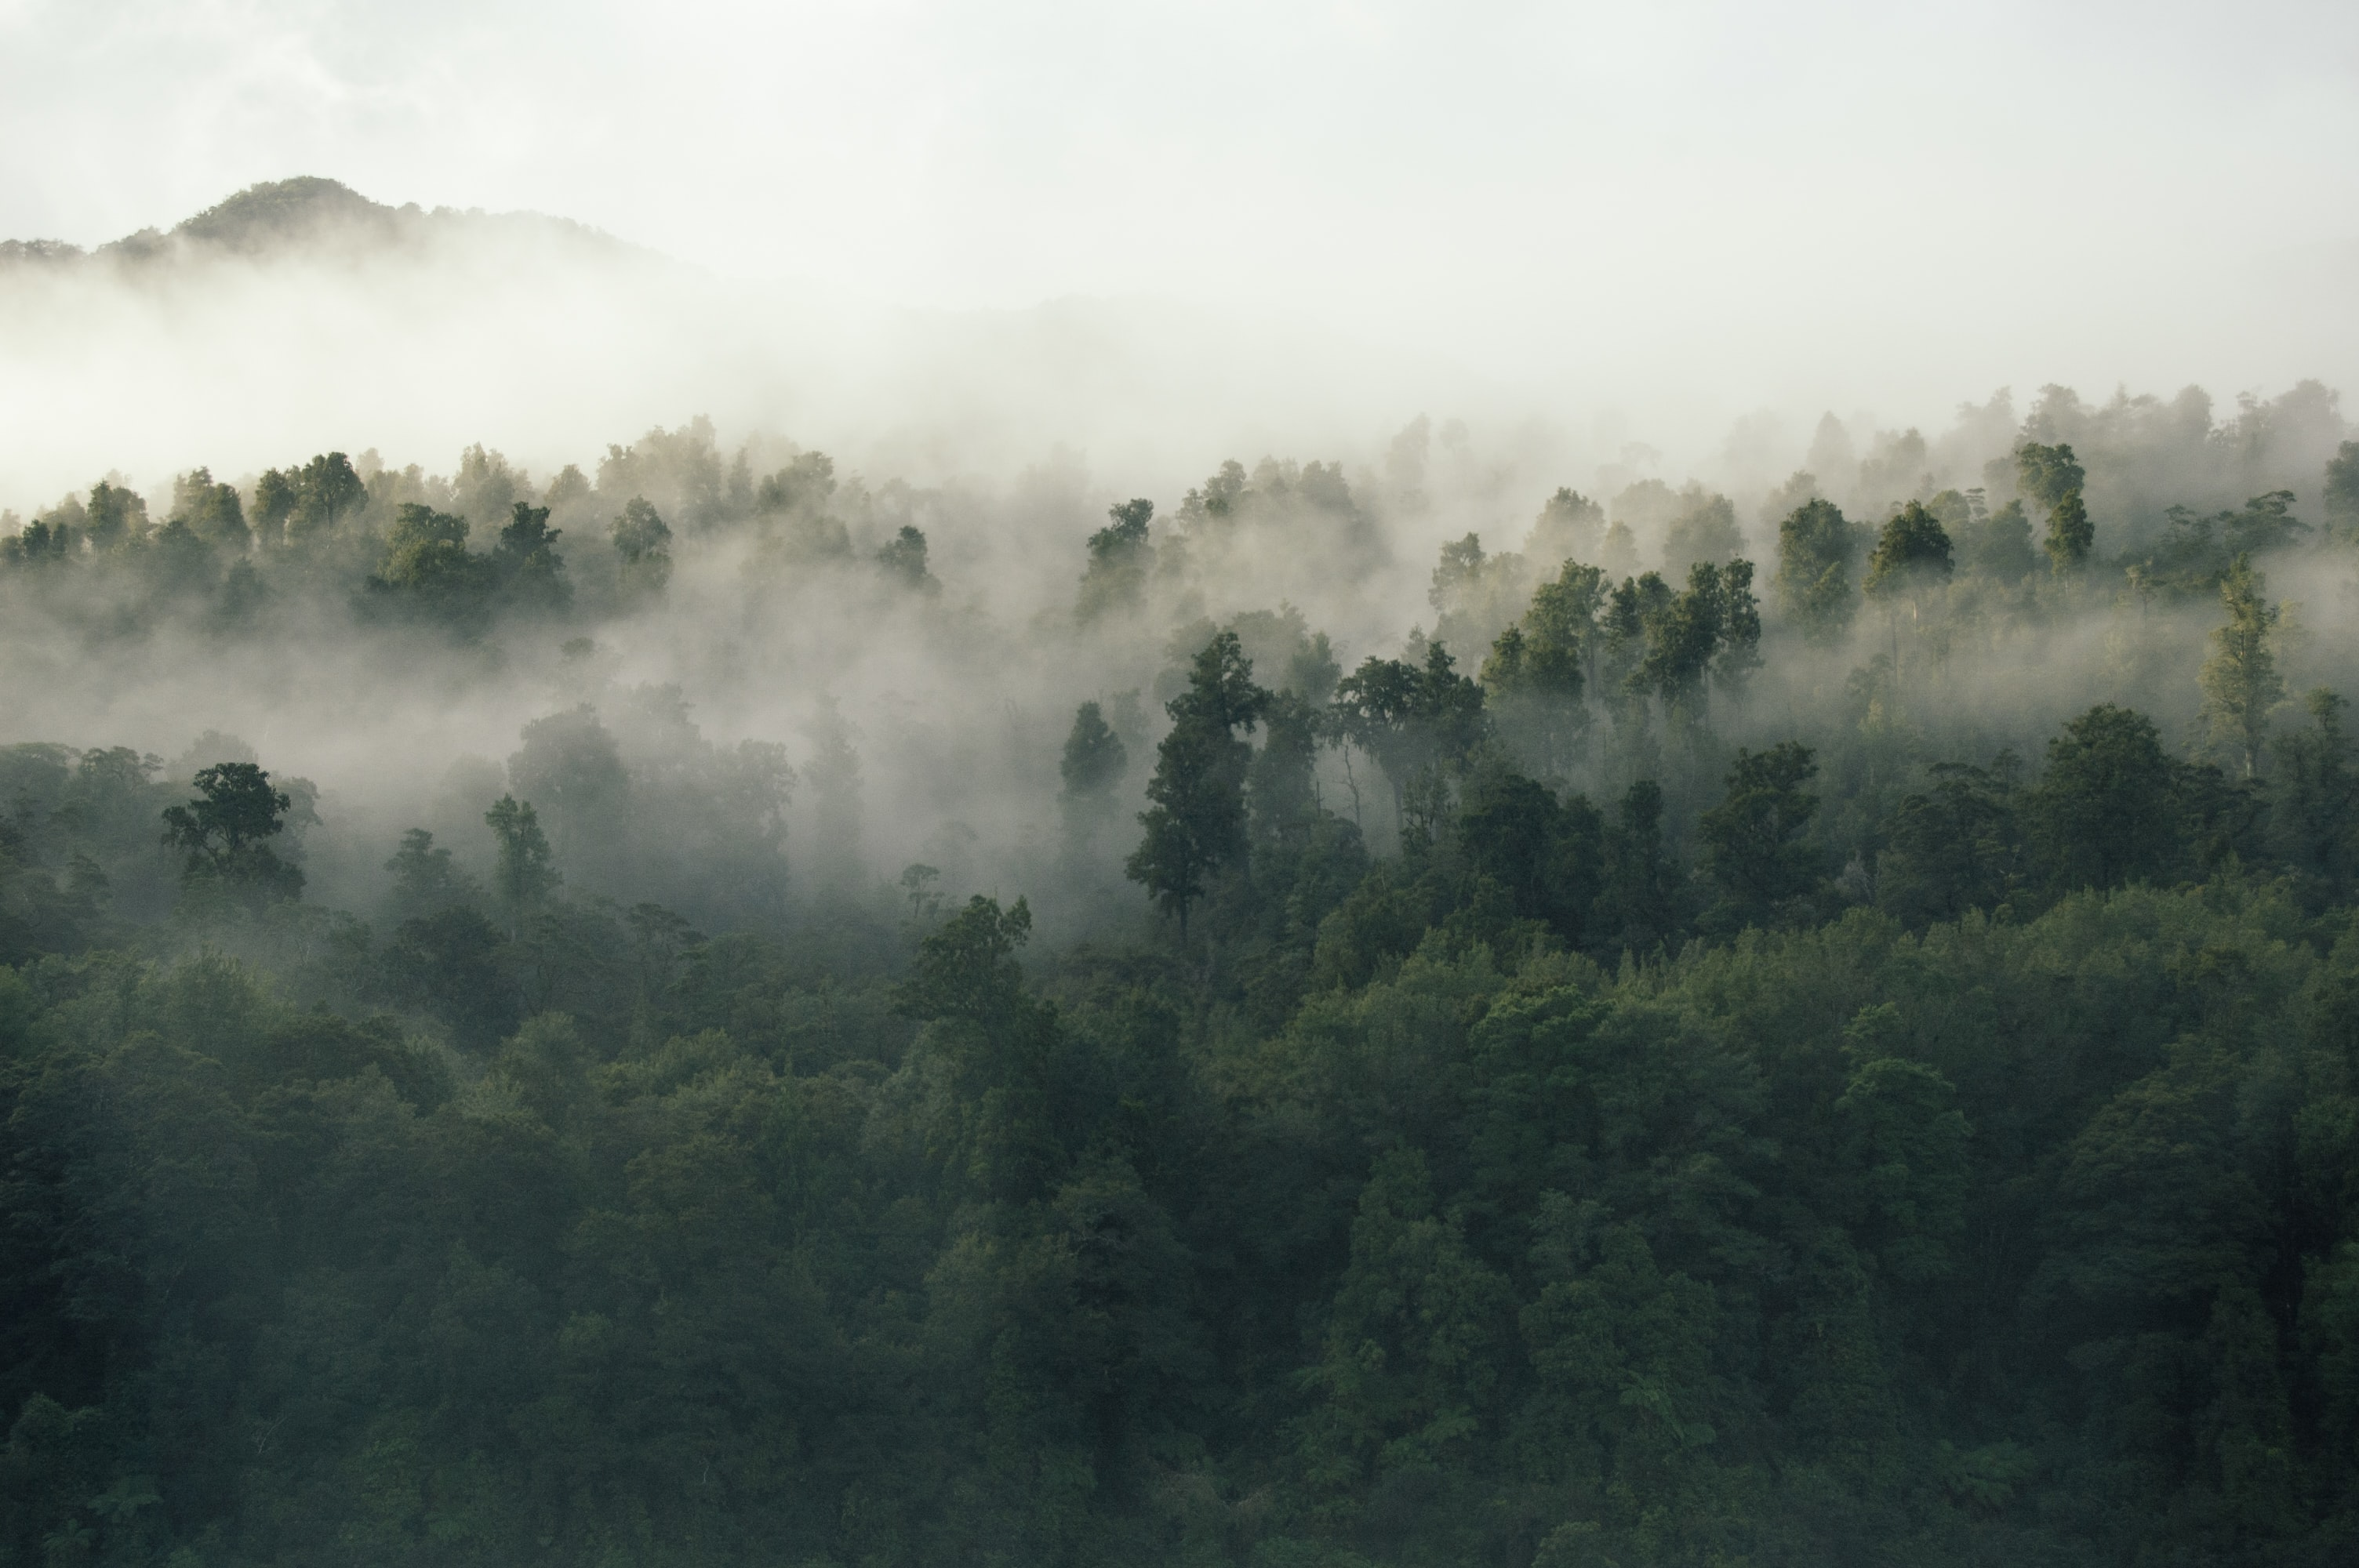 green leafed trees covered by fog during daytime